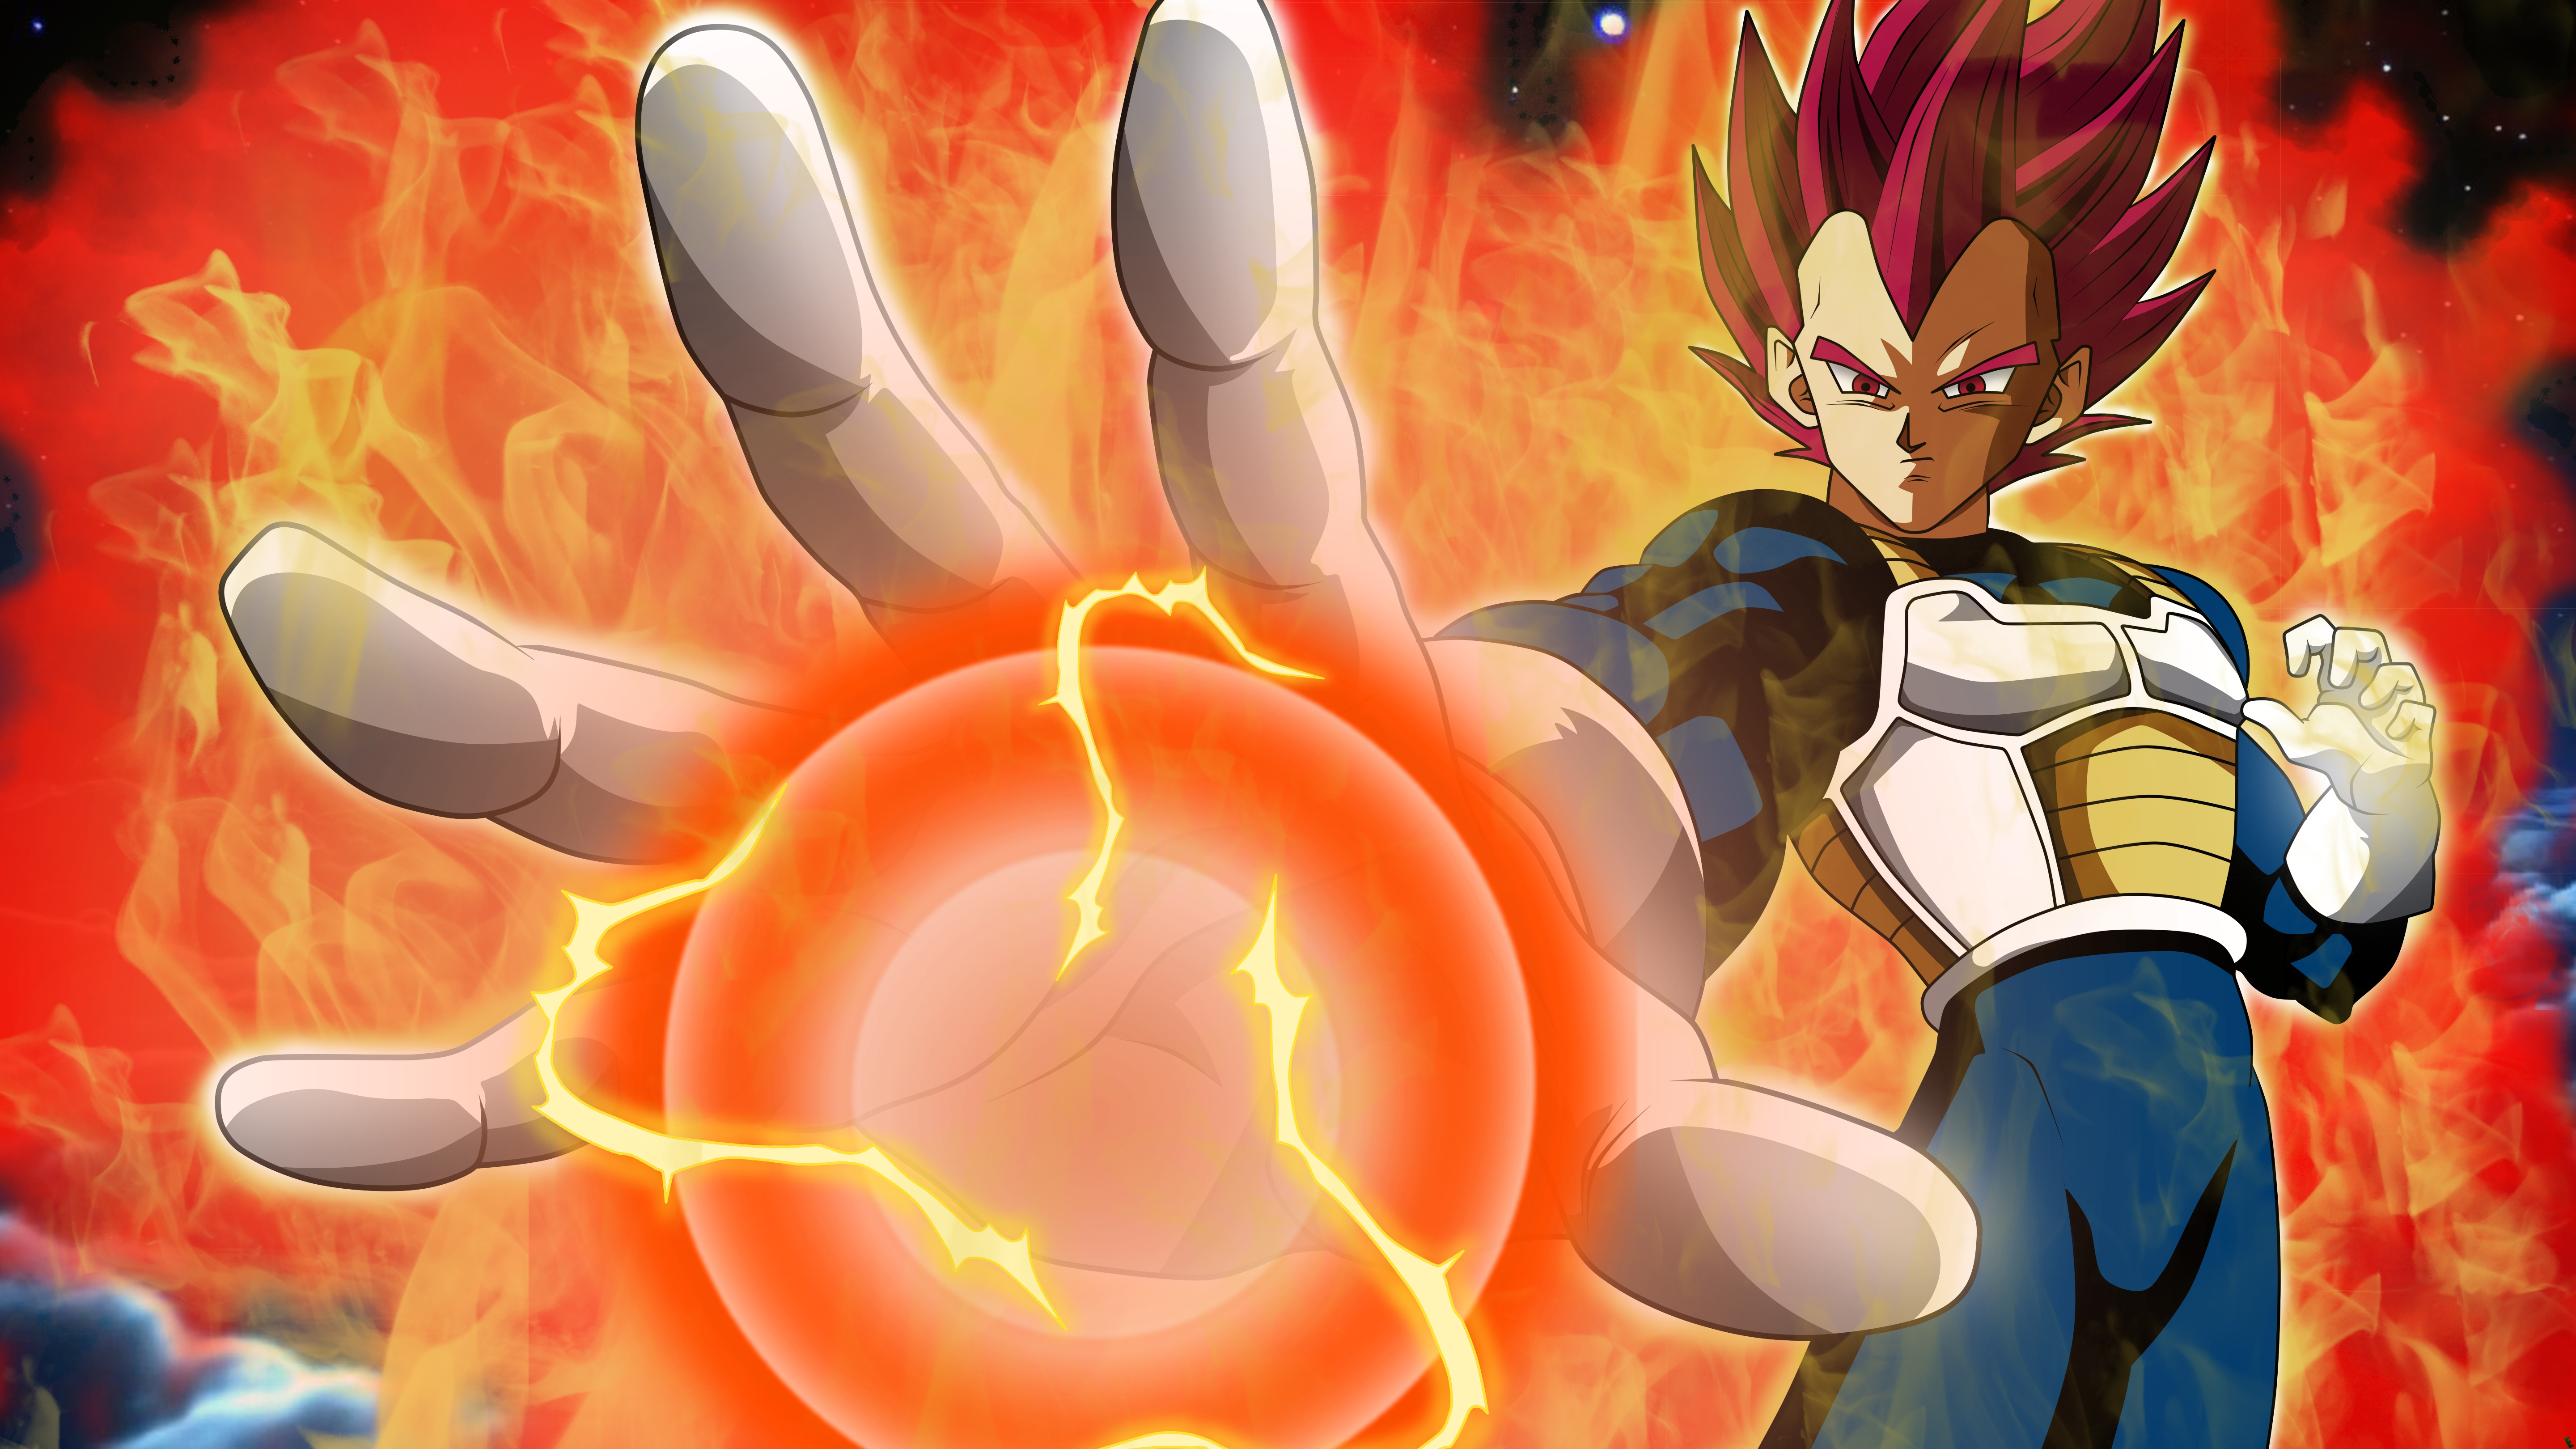 Anime Wallpaper Vegeta SSJG Super Saiyan God from Dragon Ball